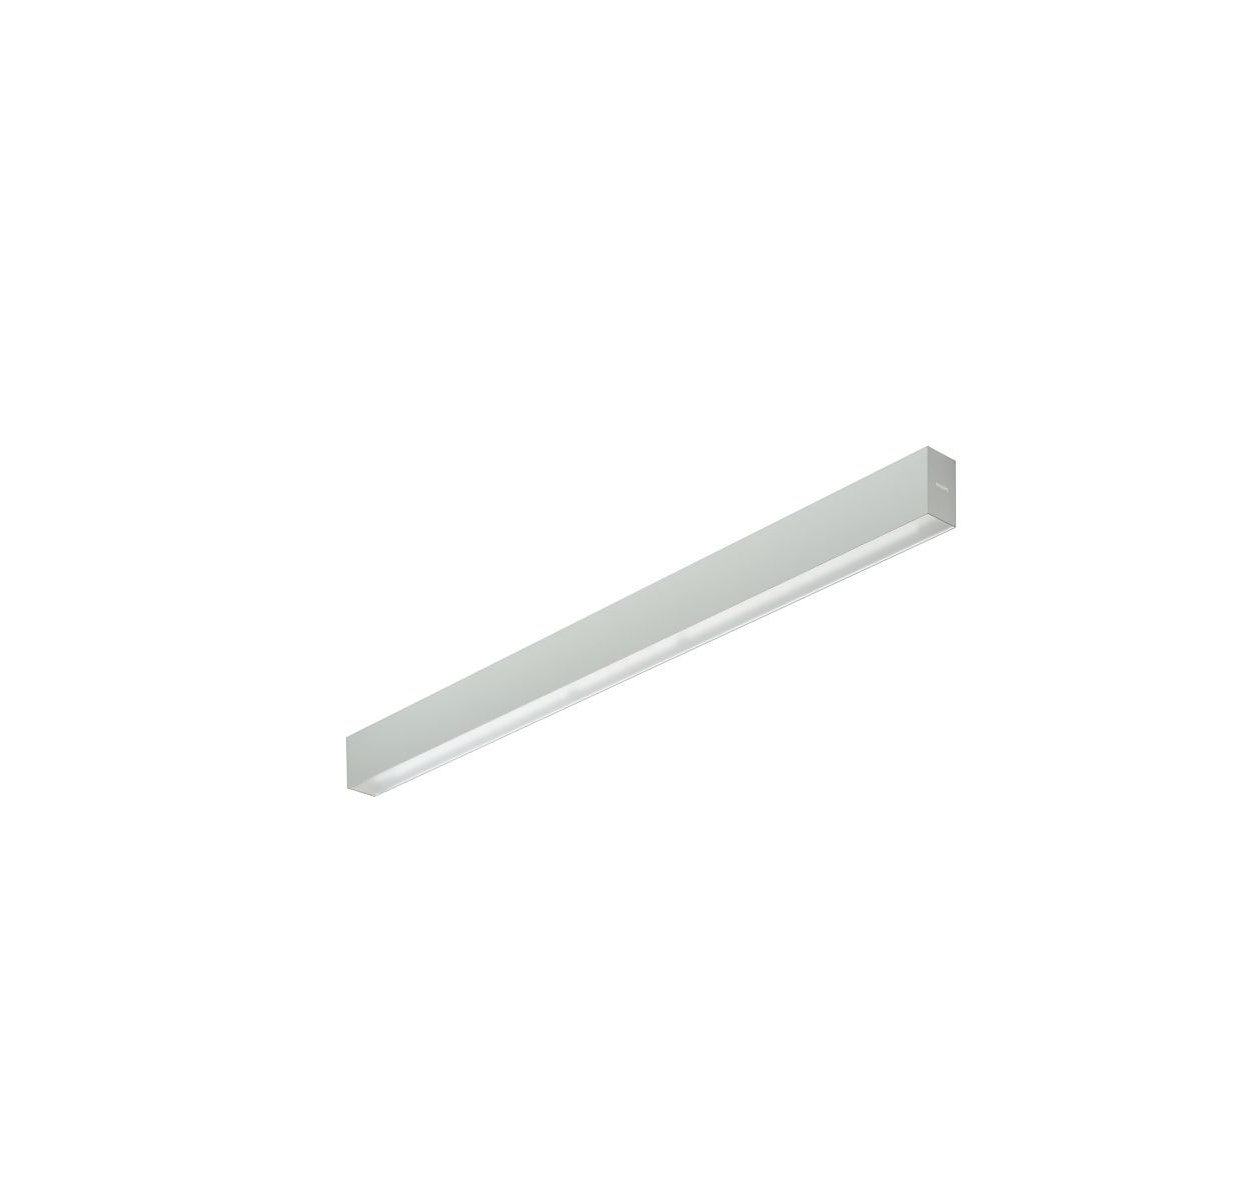 True line of light – elegant, energy-efficient and compliant with office lighting norms